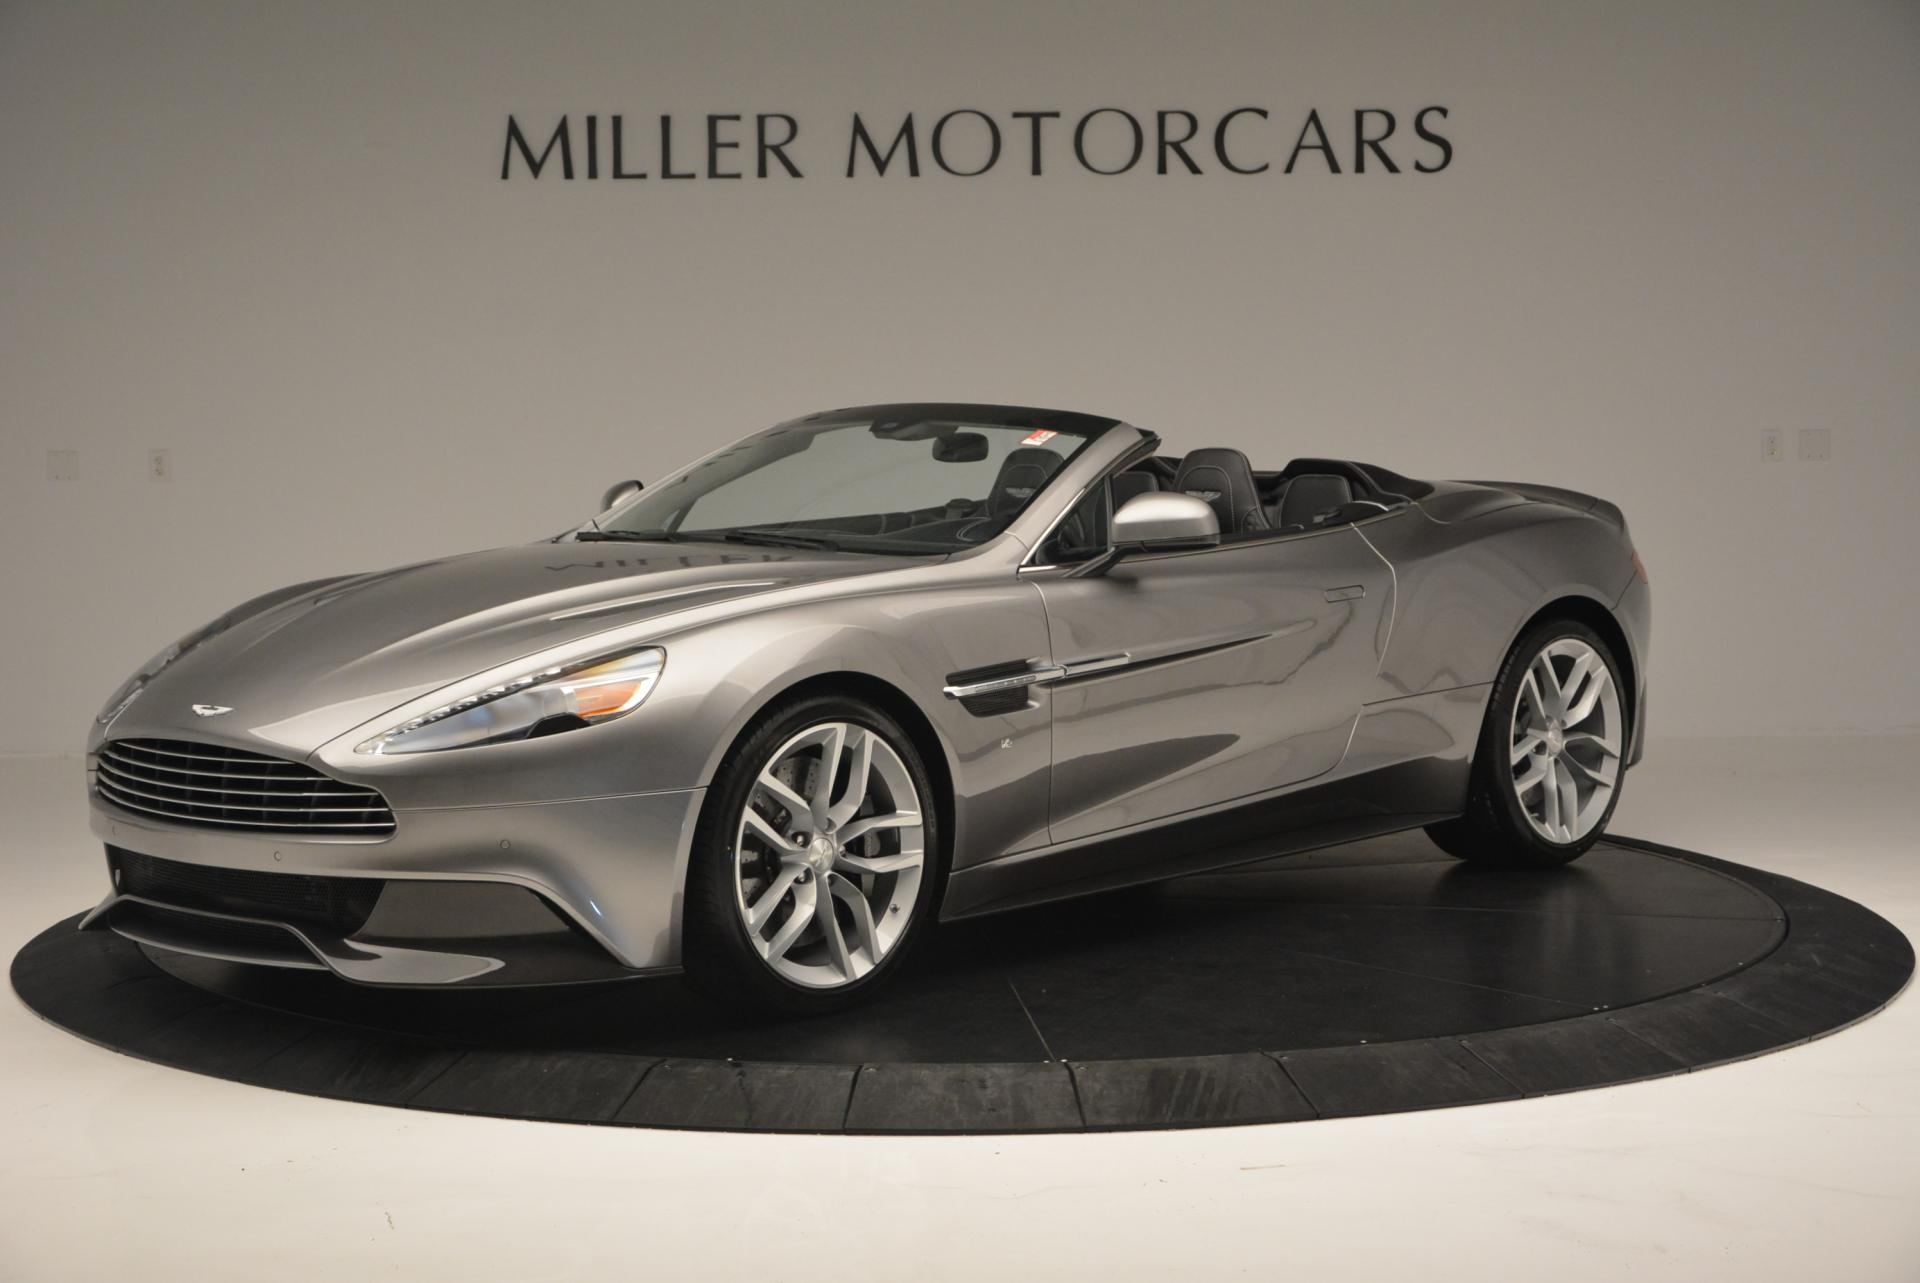 Used 2016 Aston Martin Vanquish Convertible For Sale 189900 In Greenwich, CT